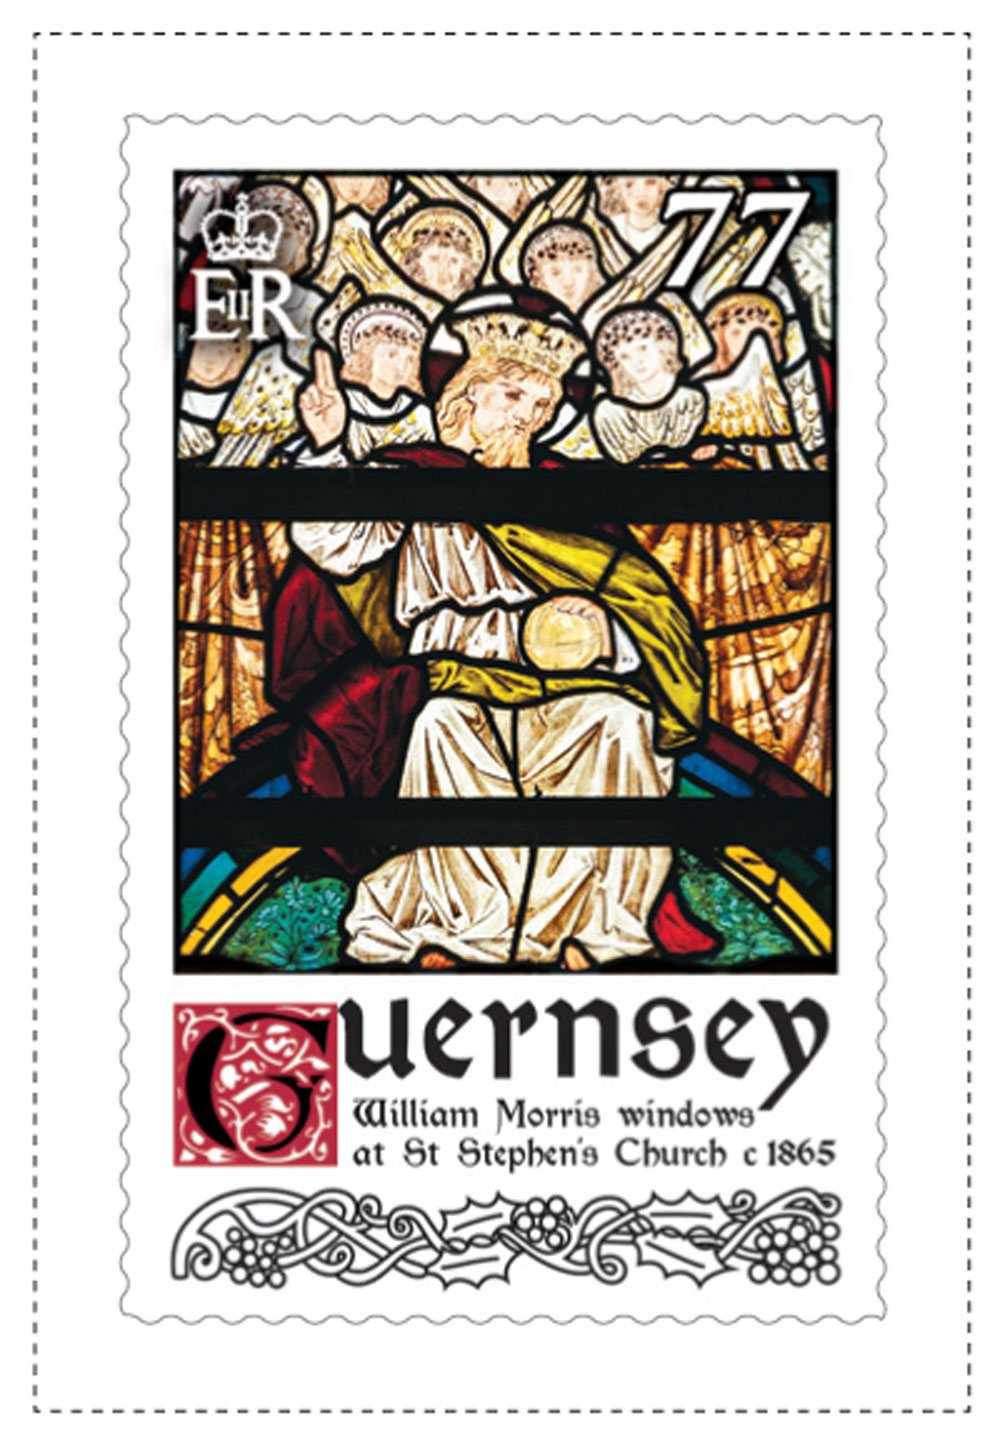 77p Stamp William Morris Stained Glass Windows